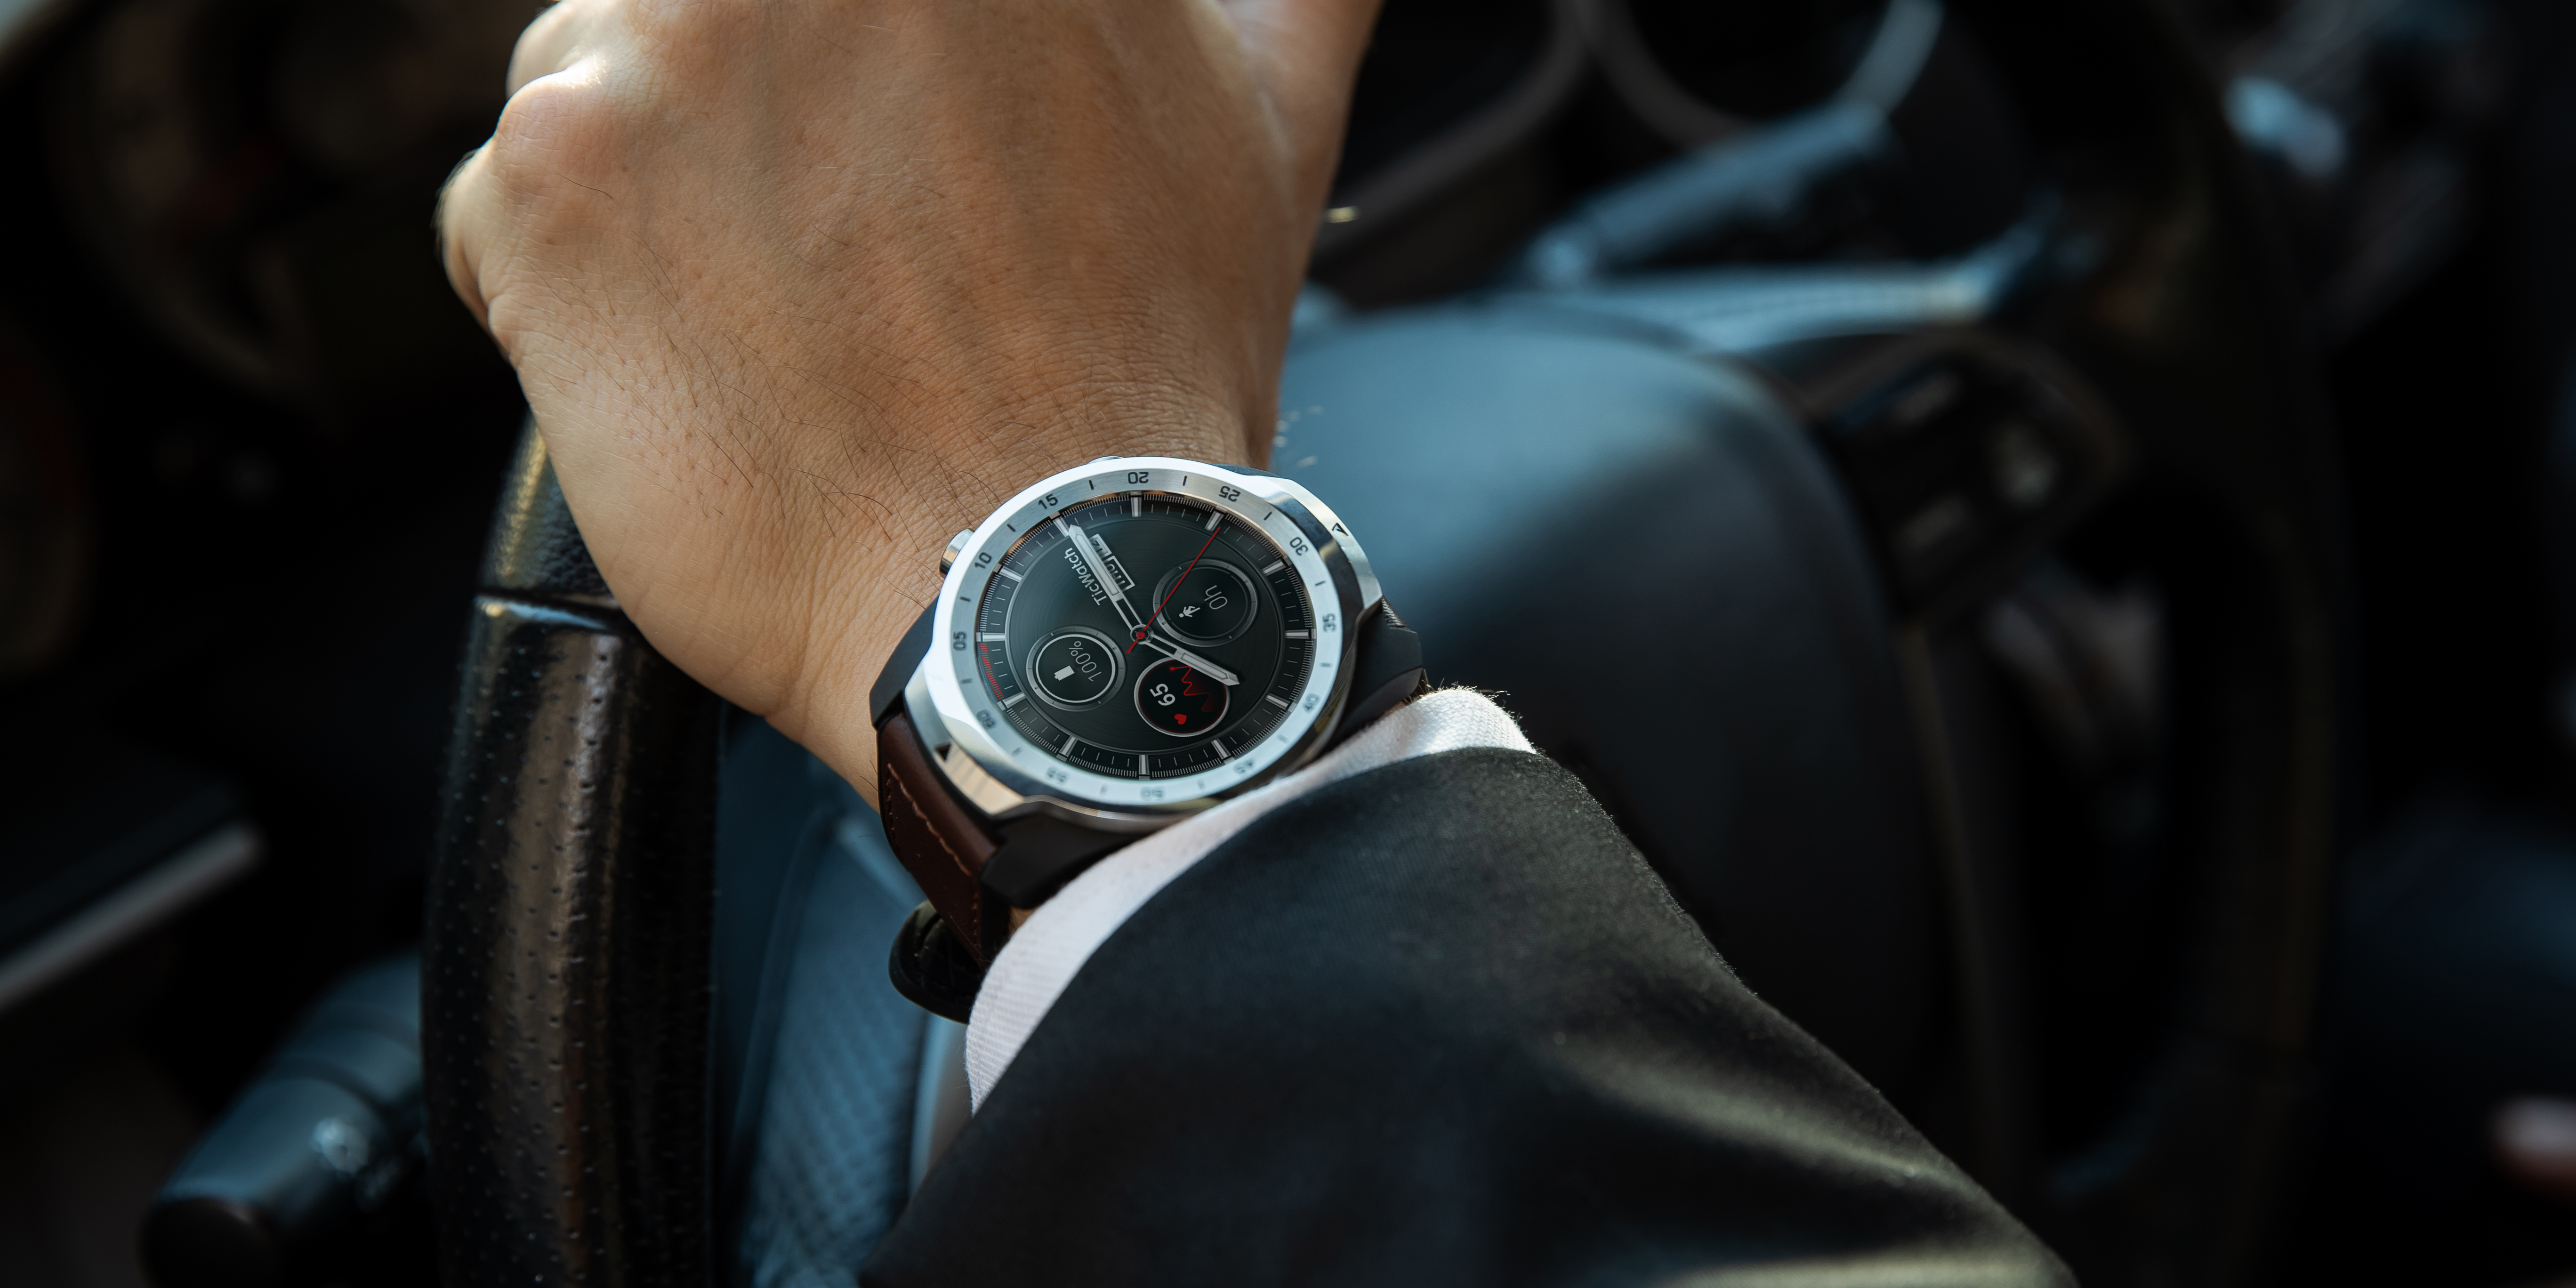 ticwatch pro goes on sale today for 249 w wear os dual display nfc 5 day battery life